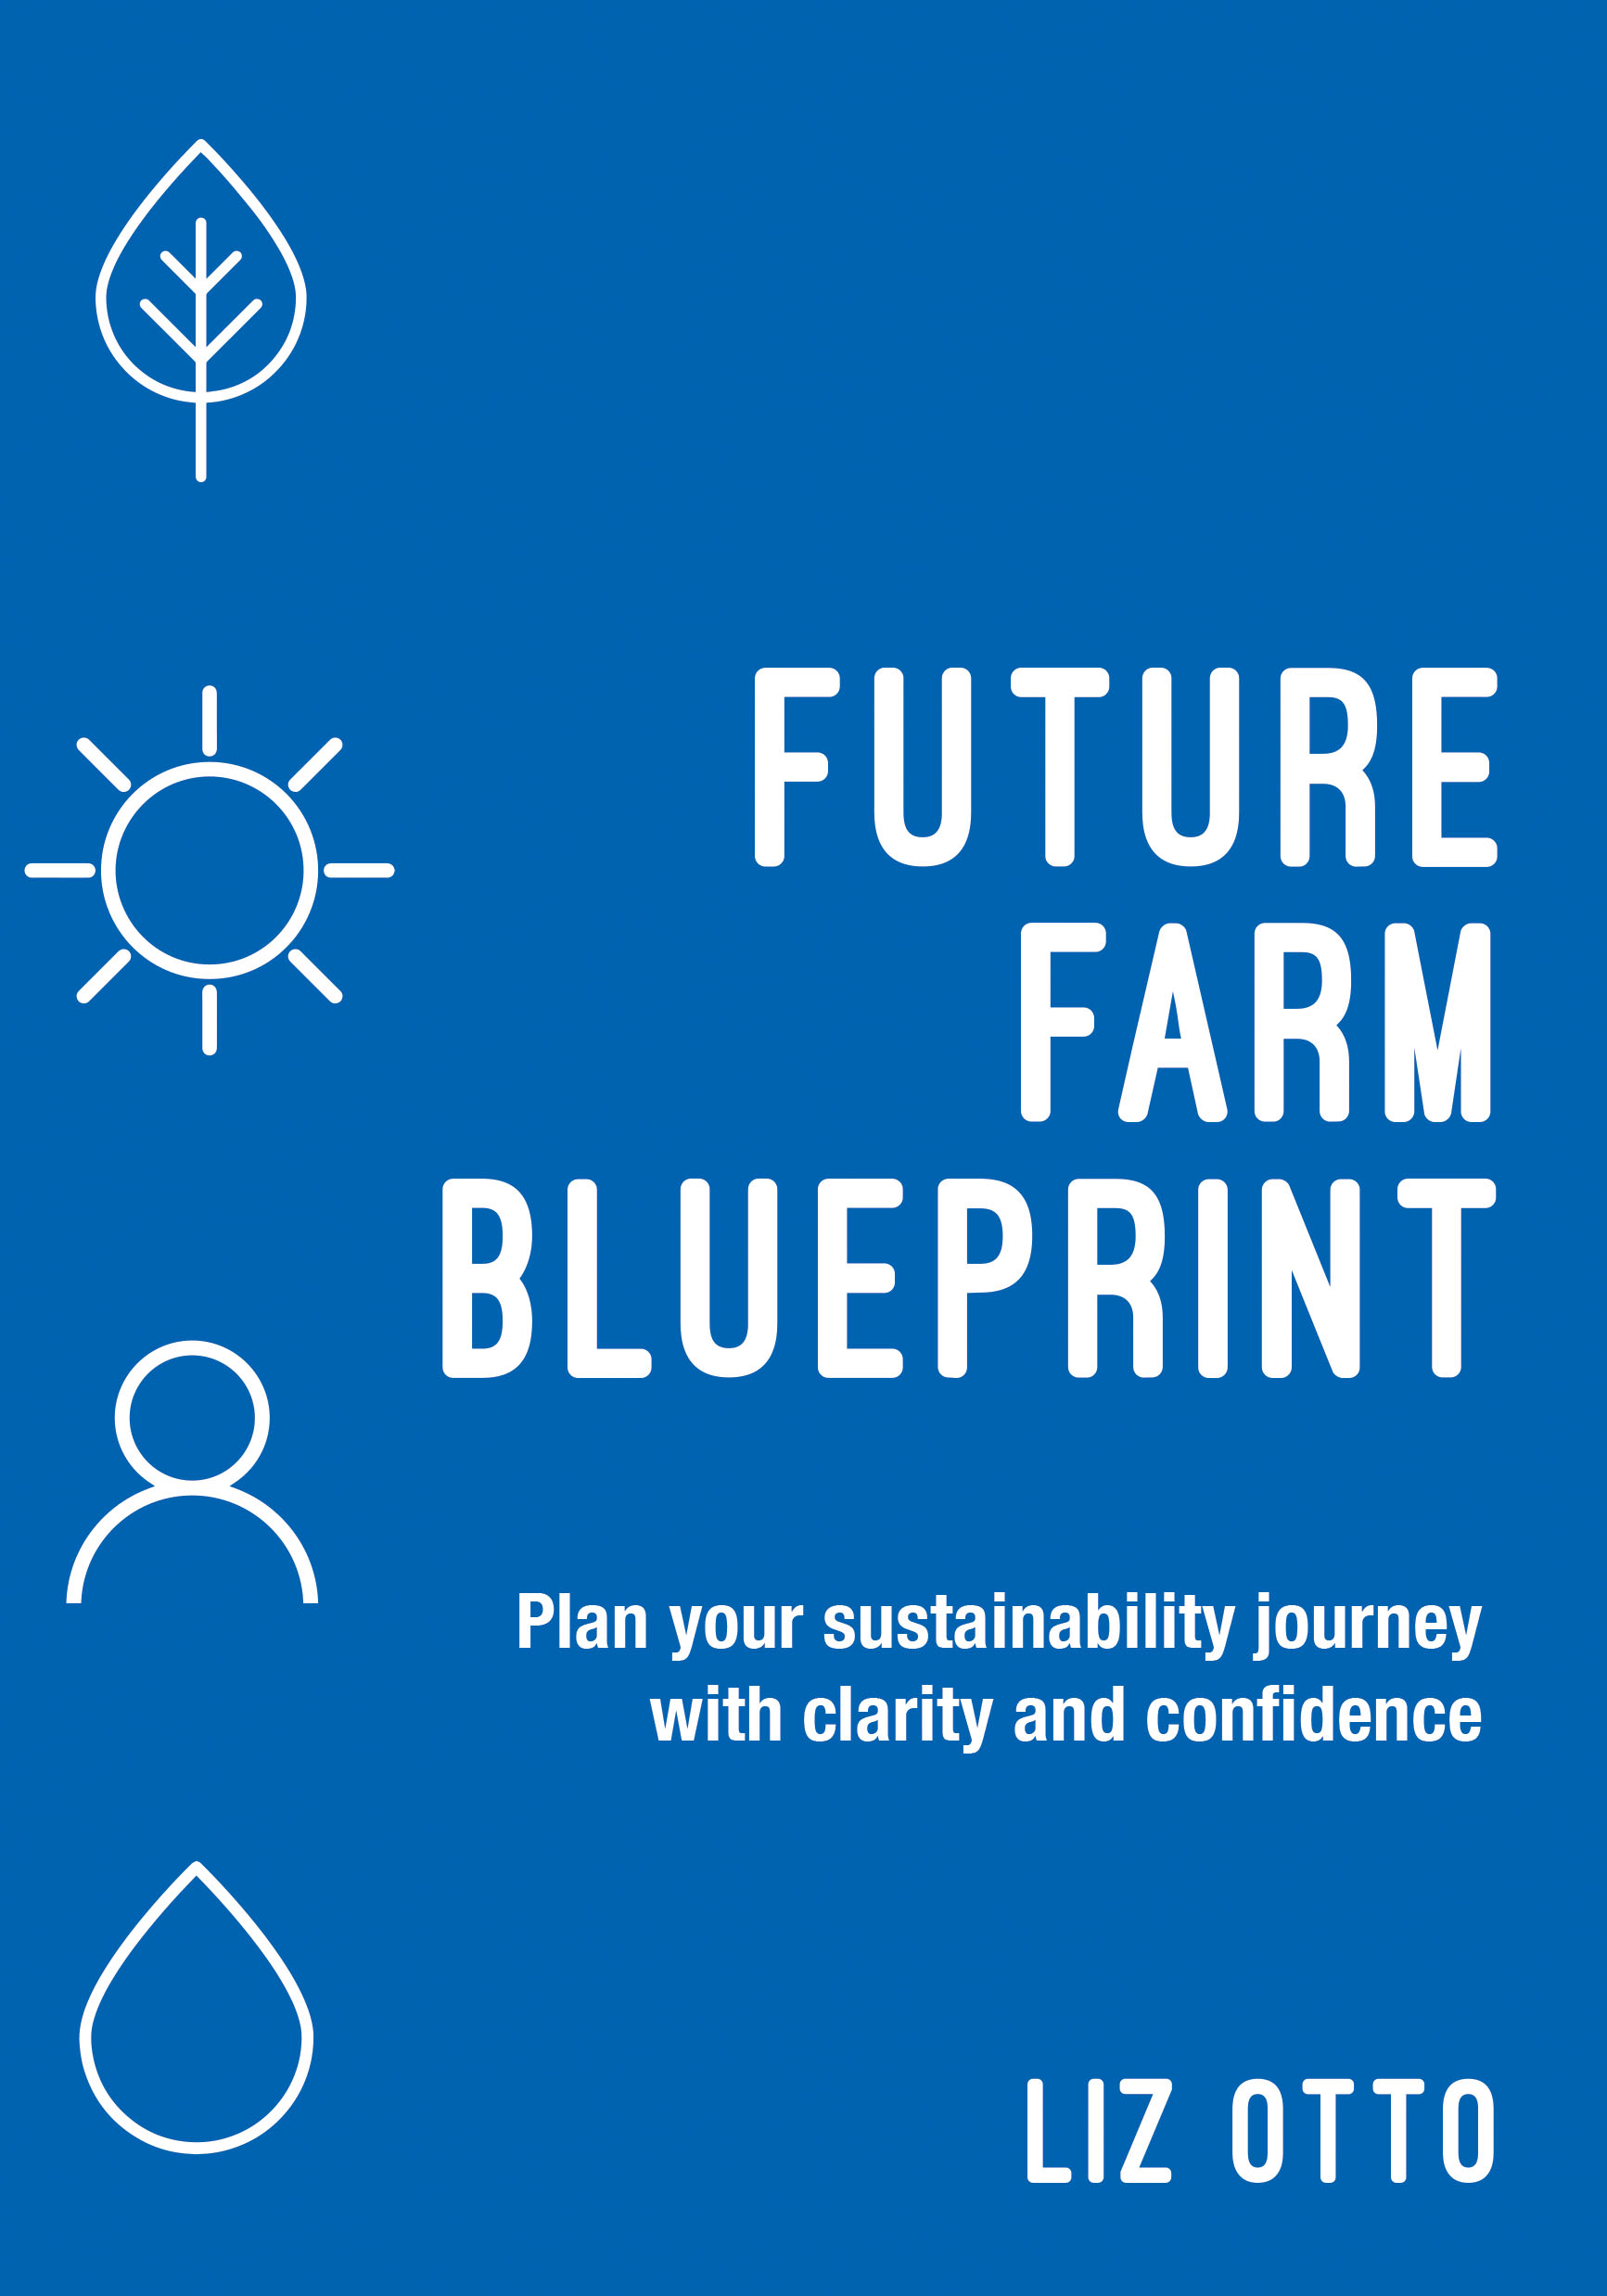 Future Farm Blueprint